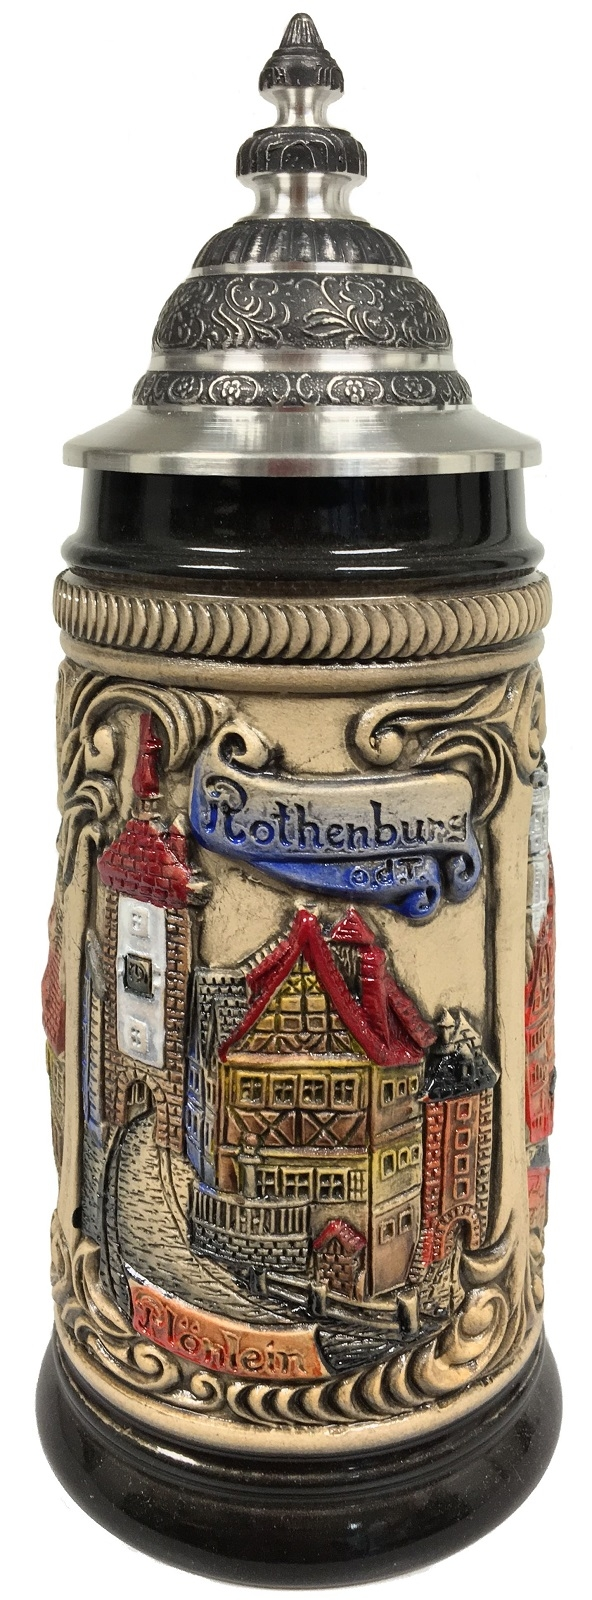 Rothenburg Germany Scenes of the City Colored Relief German Beer Stein .25 L